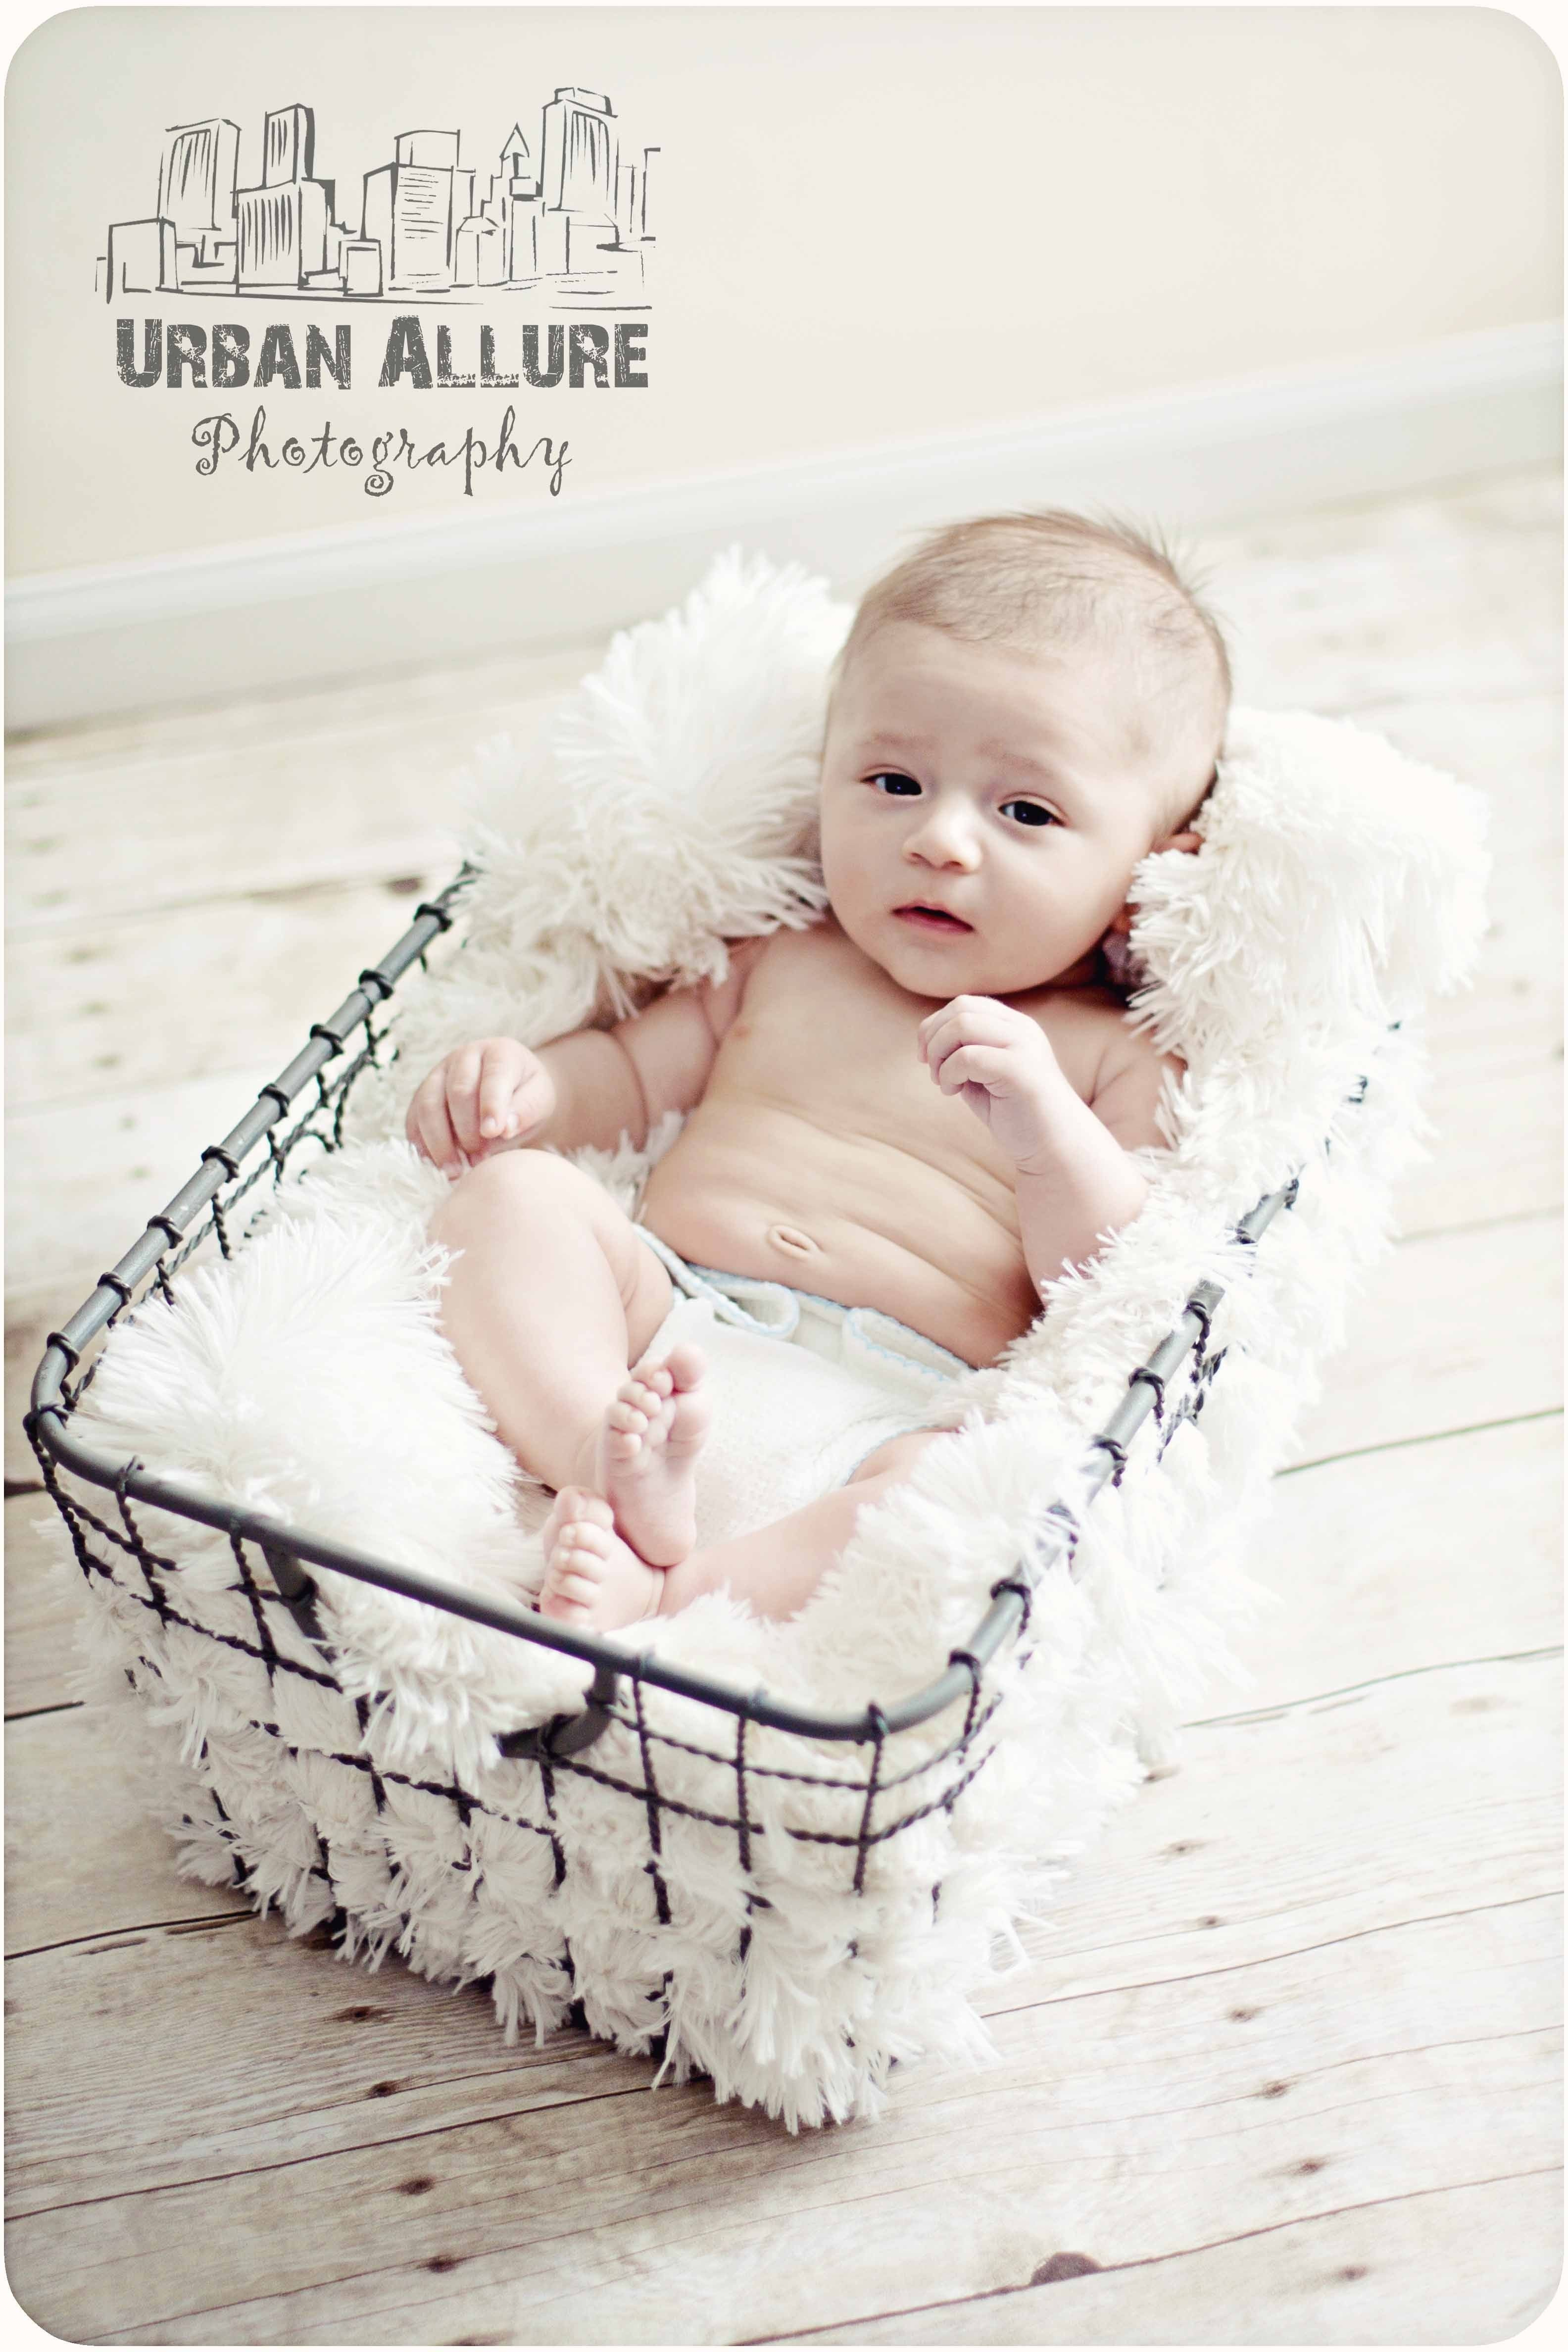 10 Fantastic 3 Month Old Photo Ideas for judsons three month pictures perhaps photography pinterest 5 2020